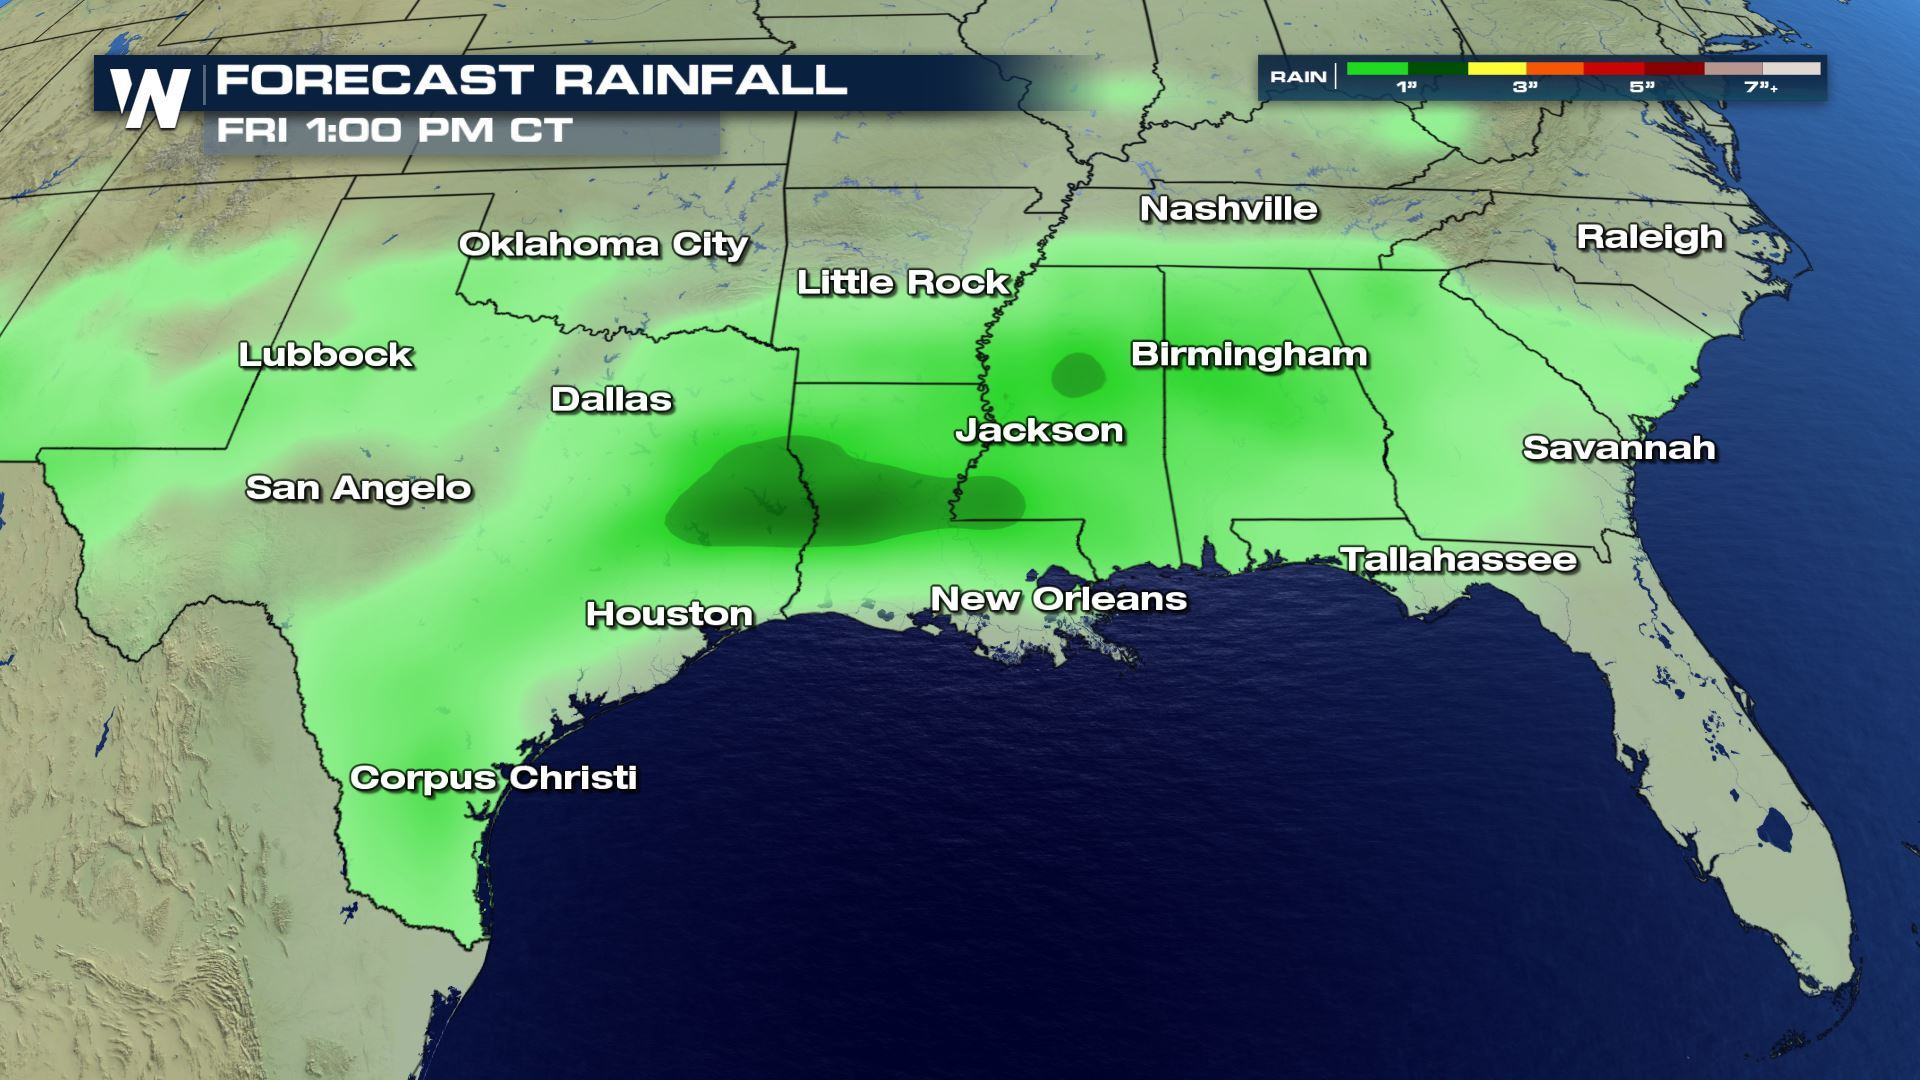 Soggy Forecast for the Southern U.S.